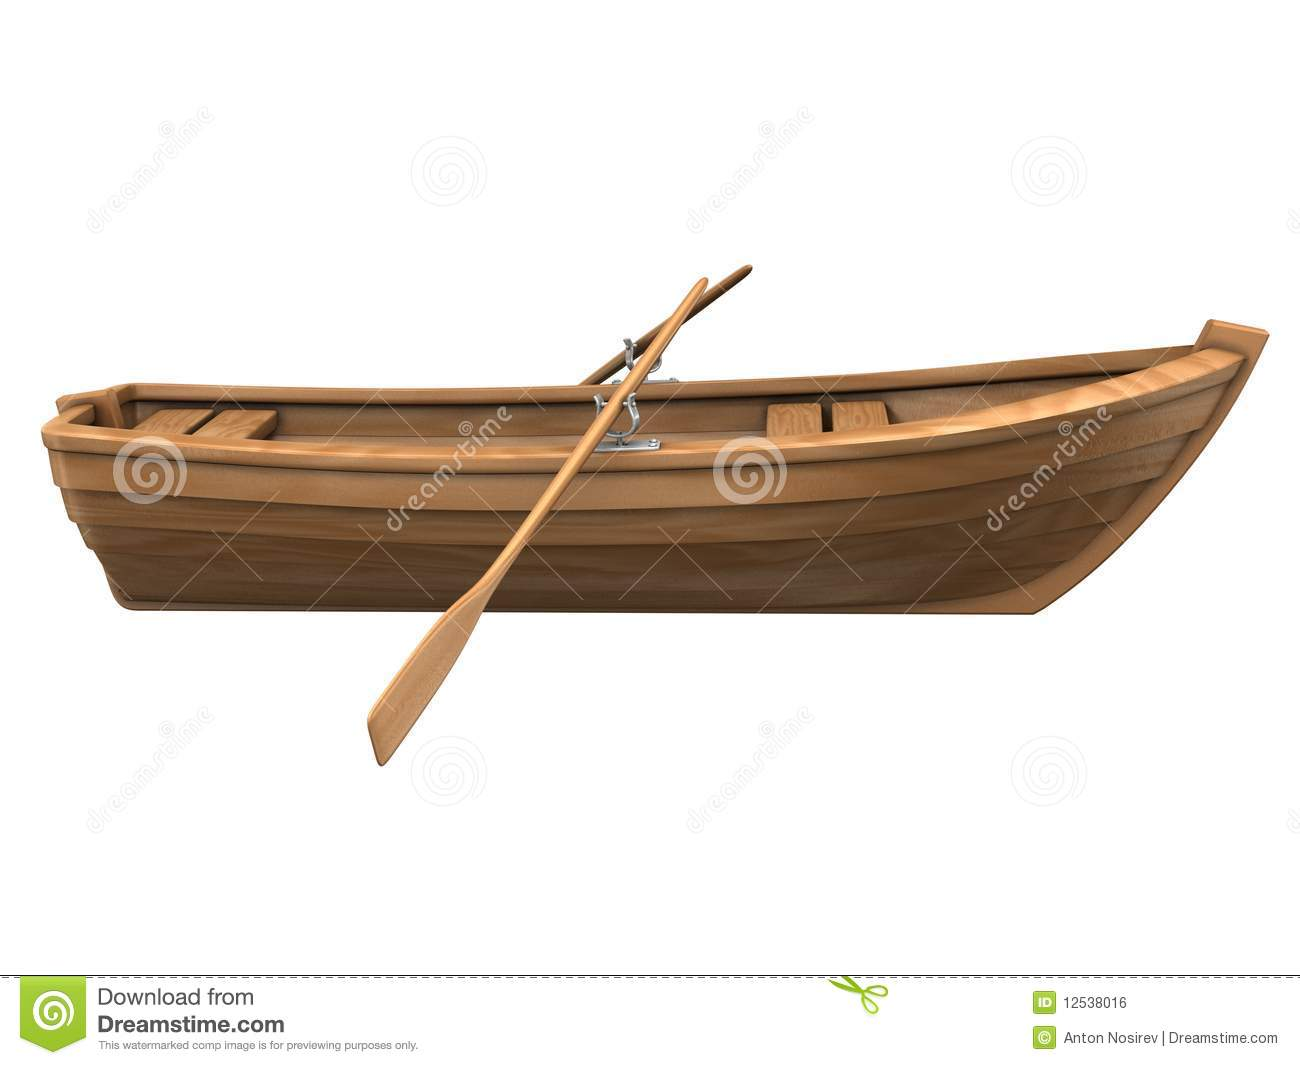 Wood Boat Isolated On White Royalty Free Stock Image - Image: 12538016